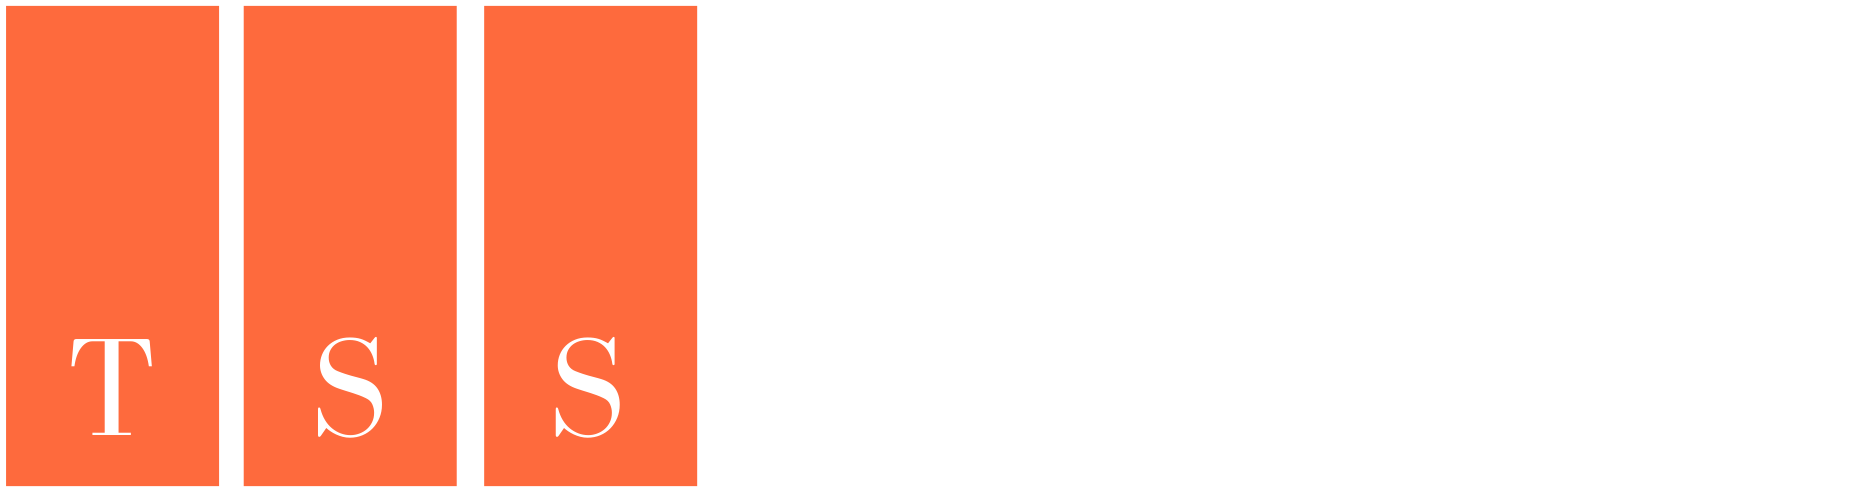 Tin Shed Solutions